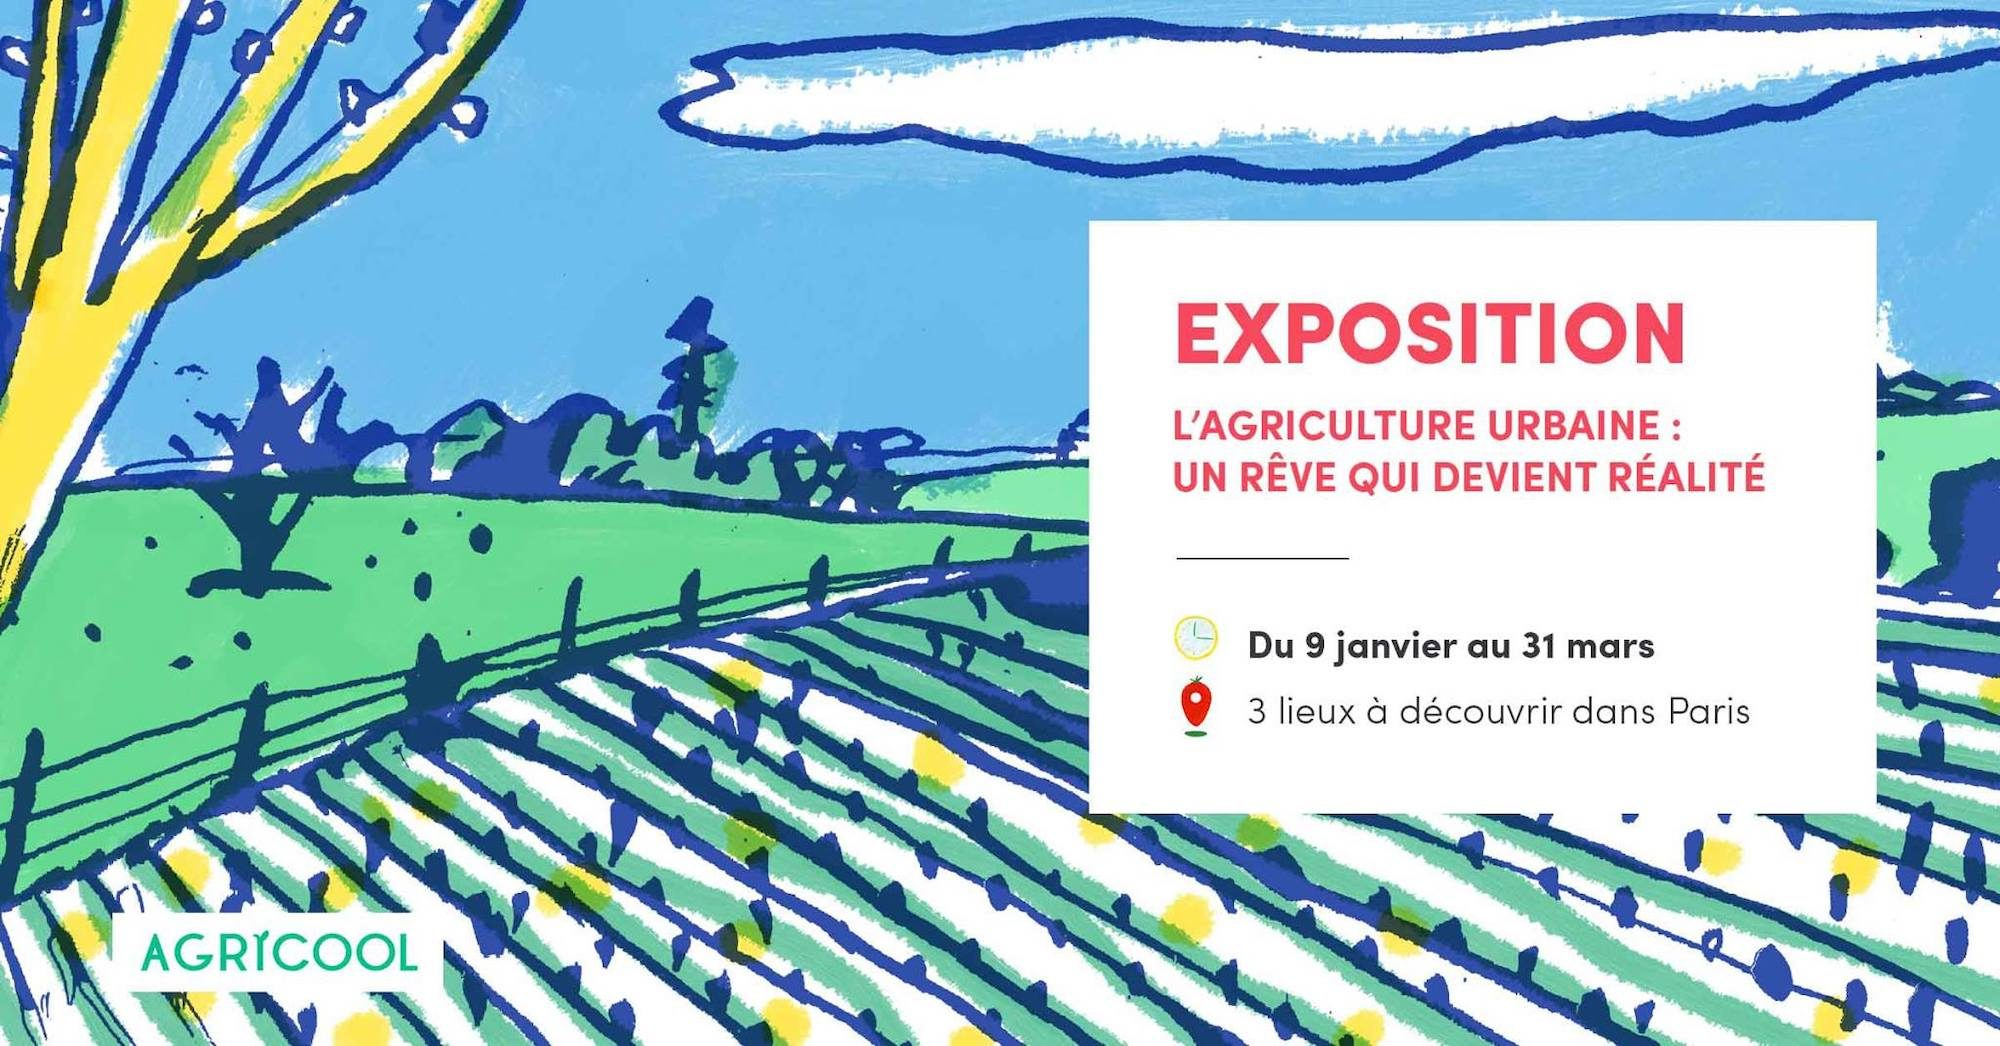 The poster for the Agricool Urban Agriculture Exhibition in Paris from January through March.